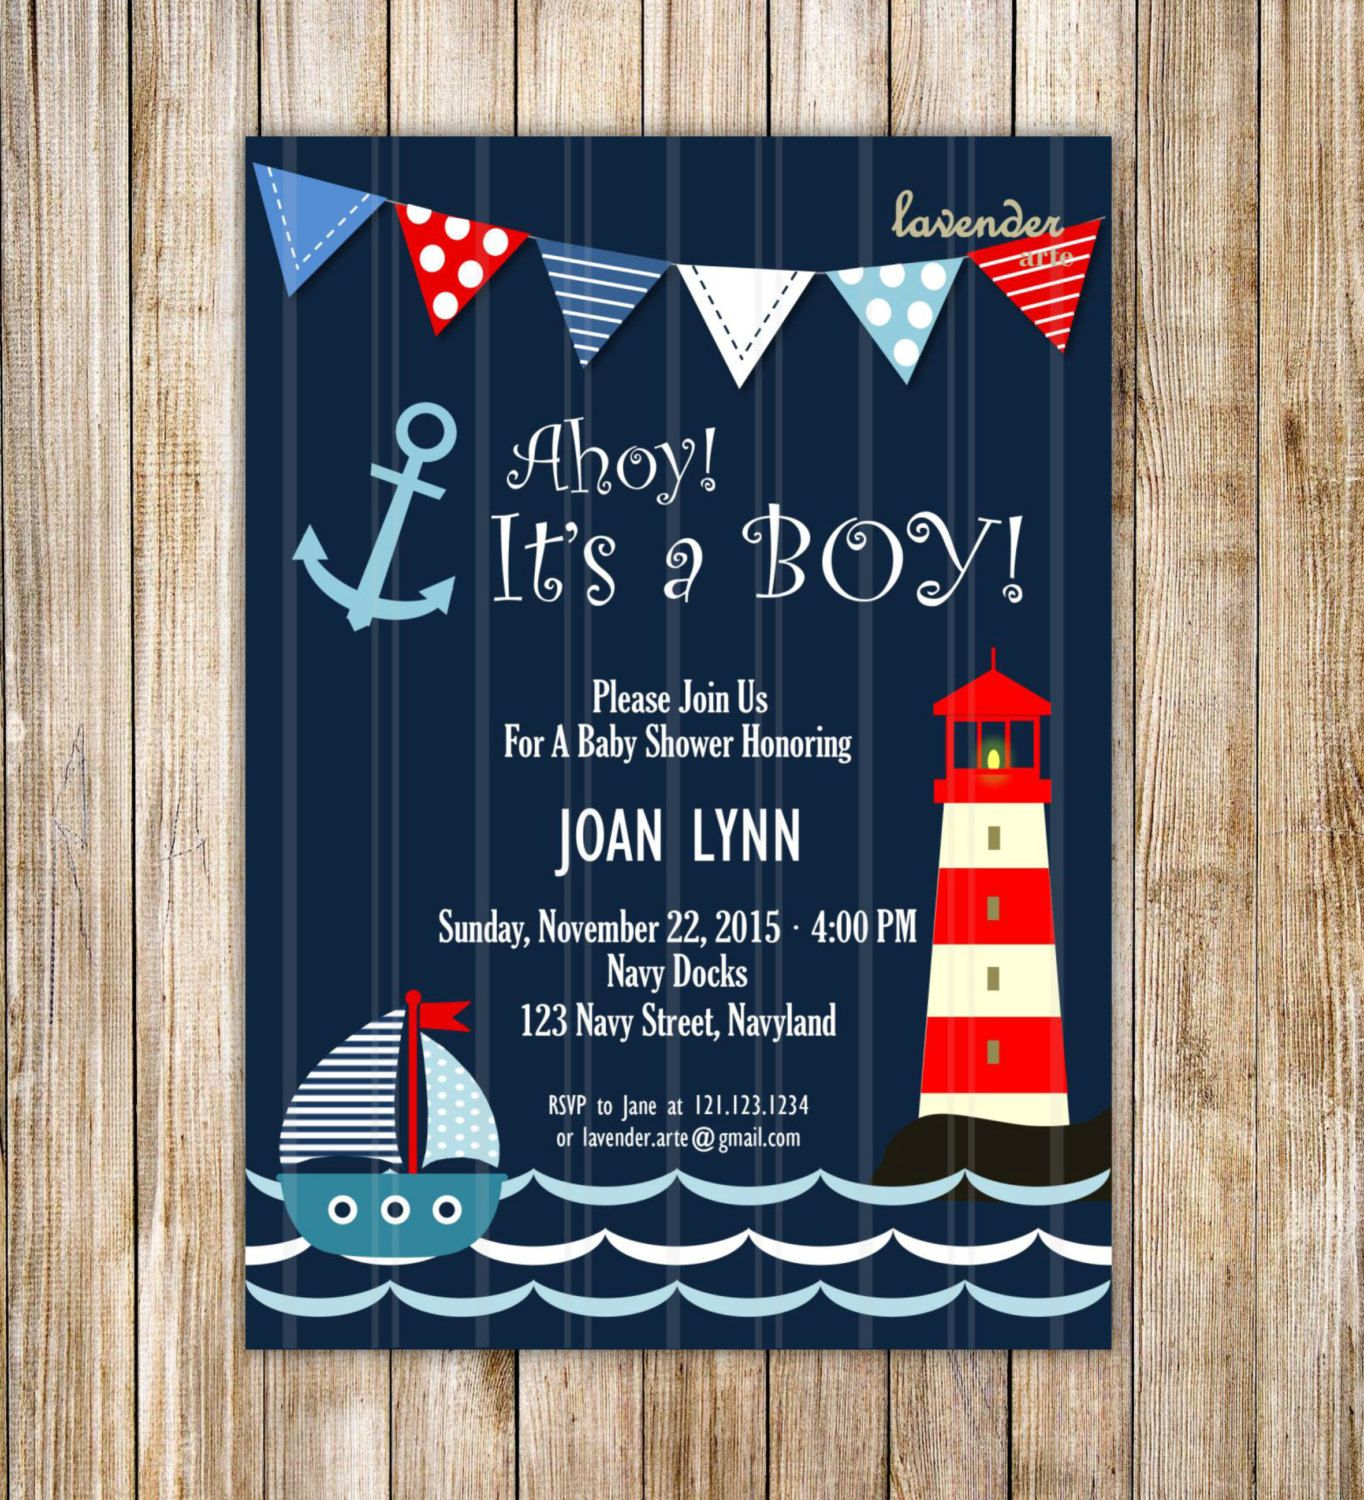 Sailor Baby Shower Invitations Free | Invitations Card by ...